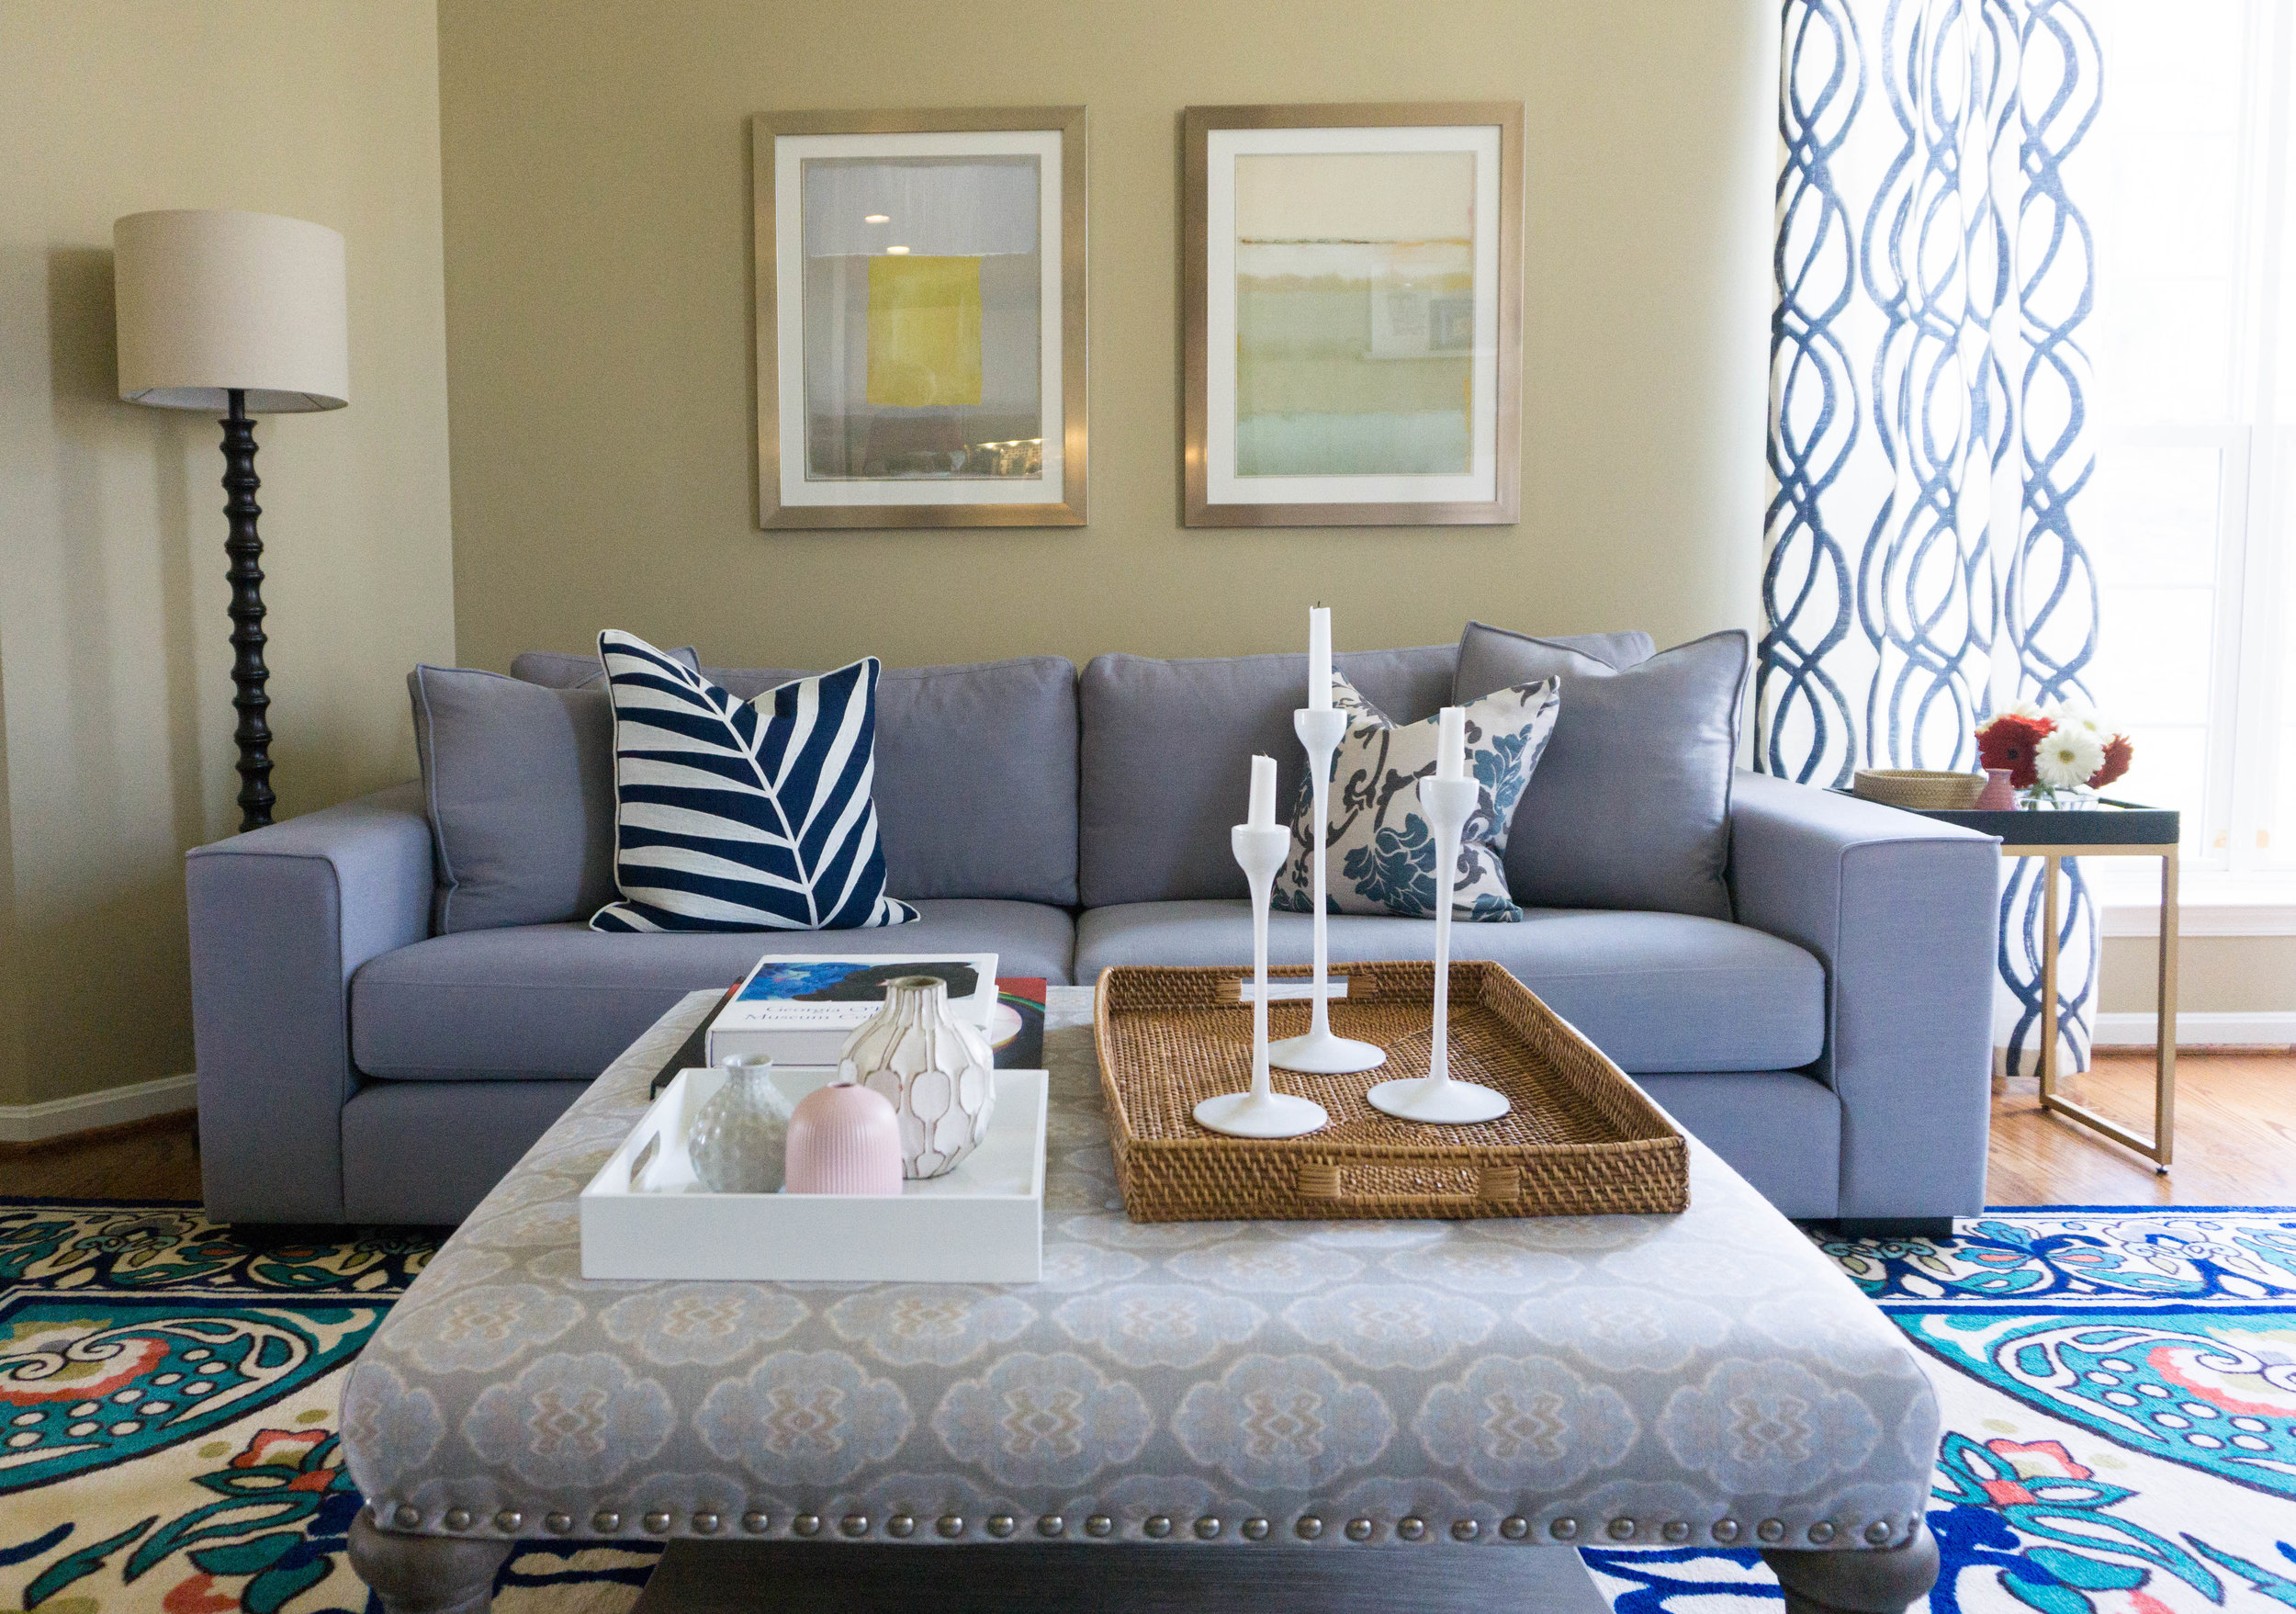 A blue couch was a must for Jen and we based the design around that concept.